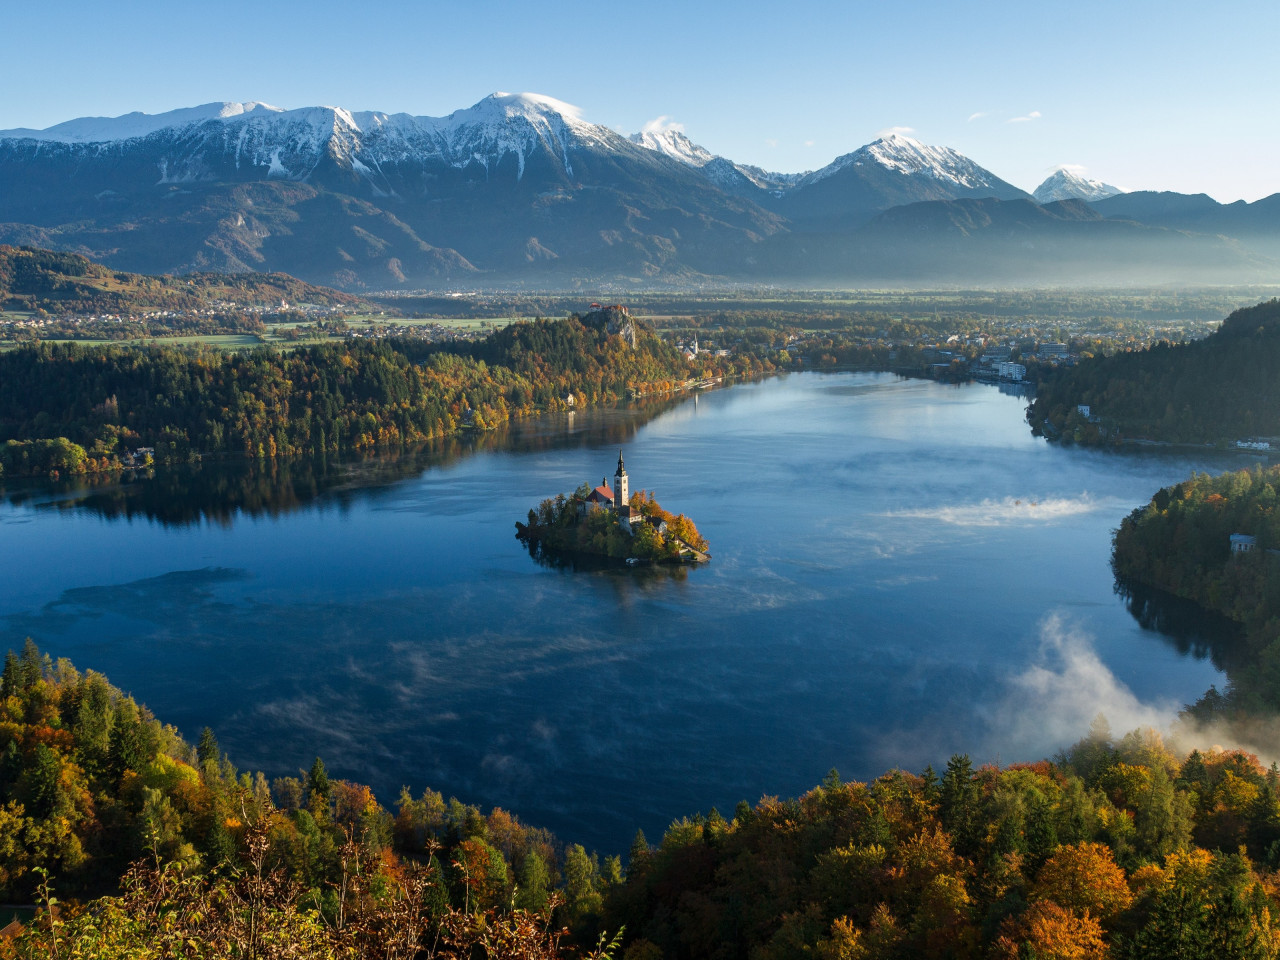 Best landscape from Bled, Slovenia | 1280x960 wallpaper